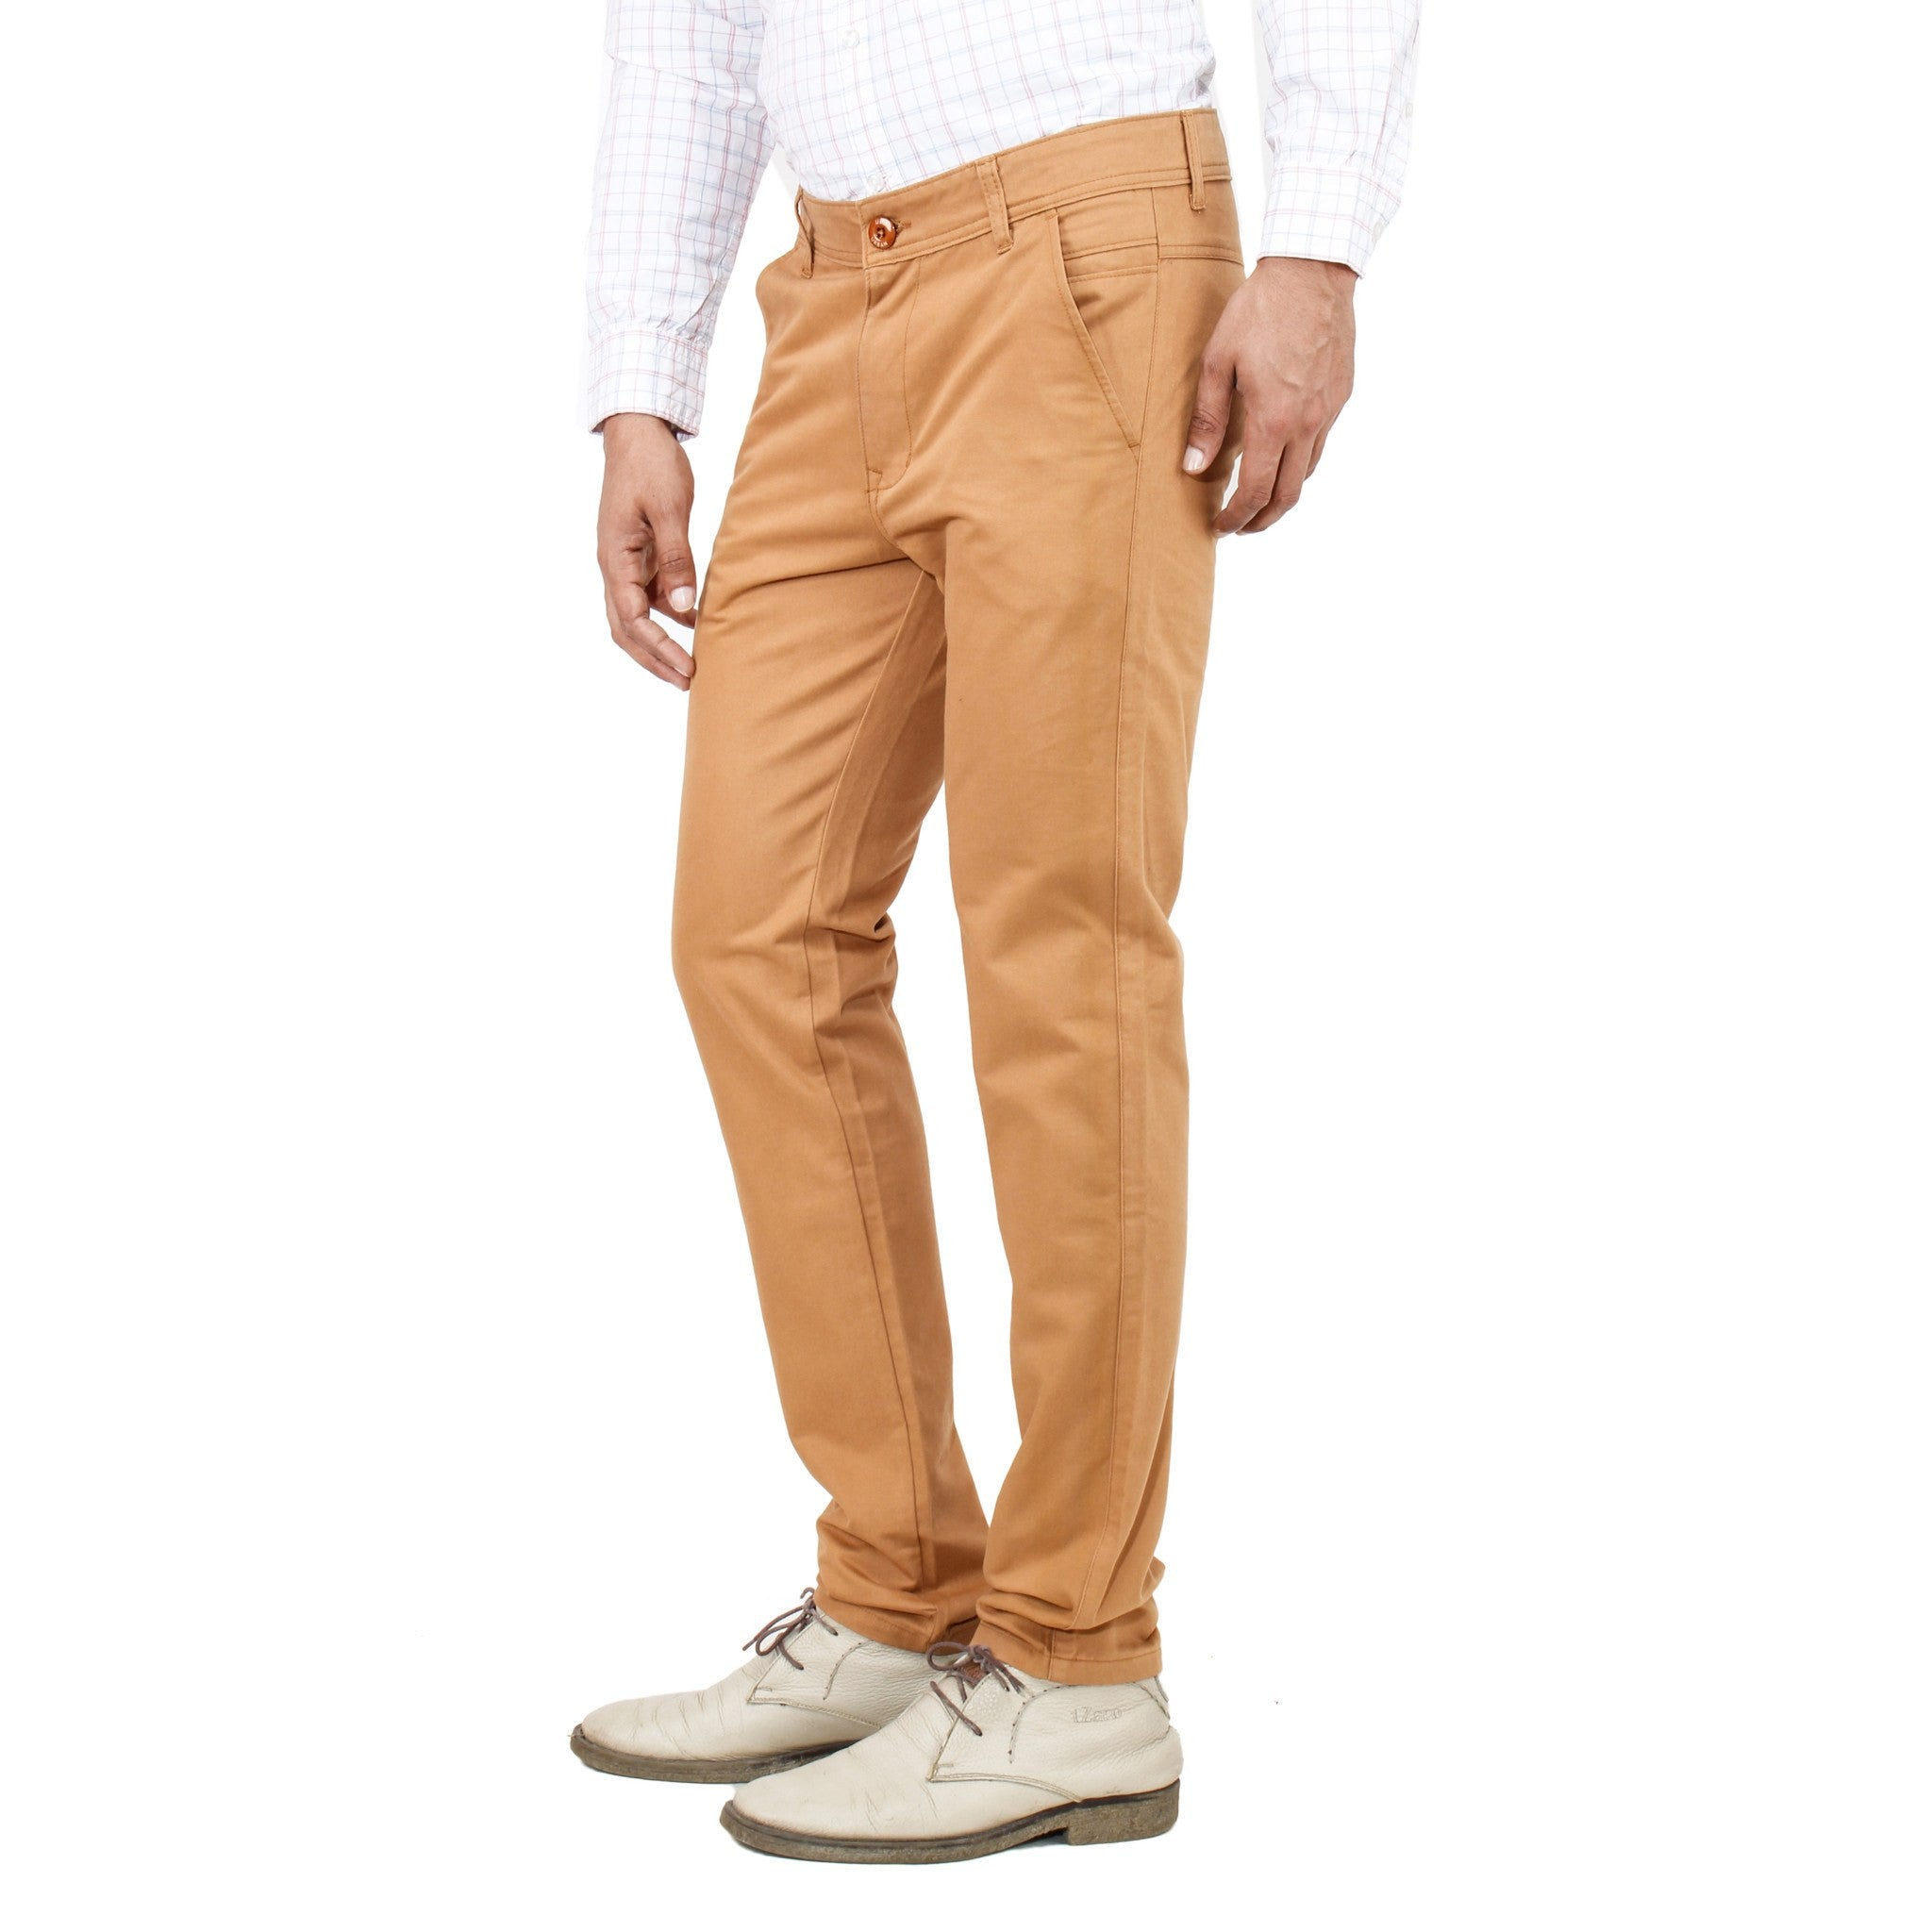 Sandy Brown Rocky Trouser side view